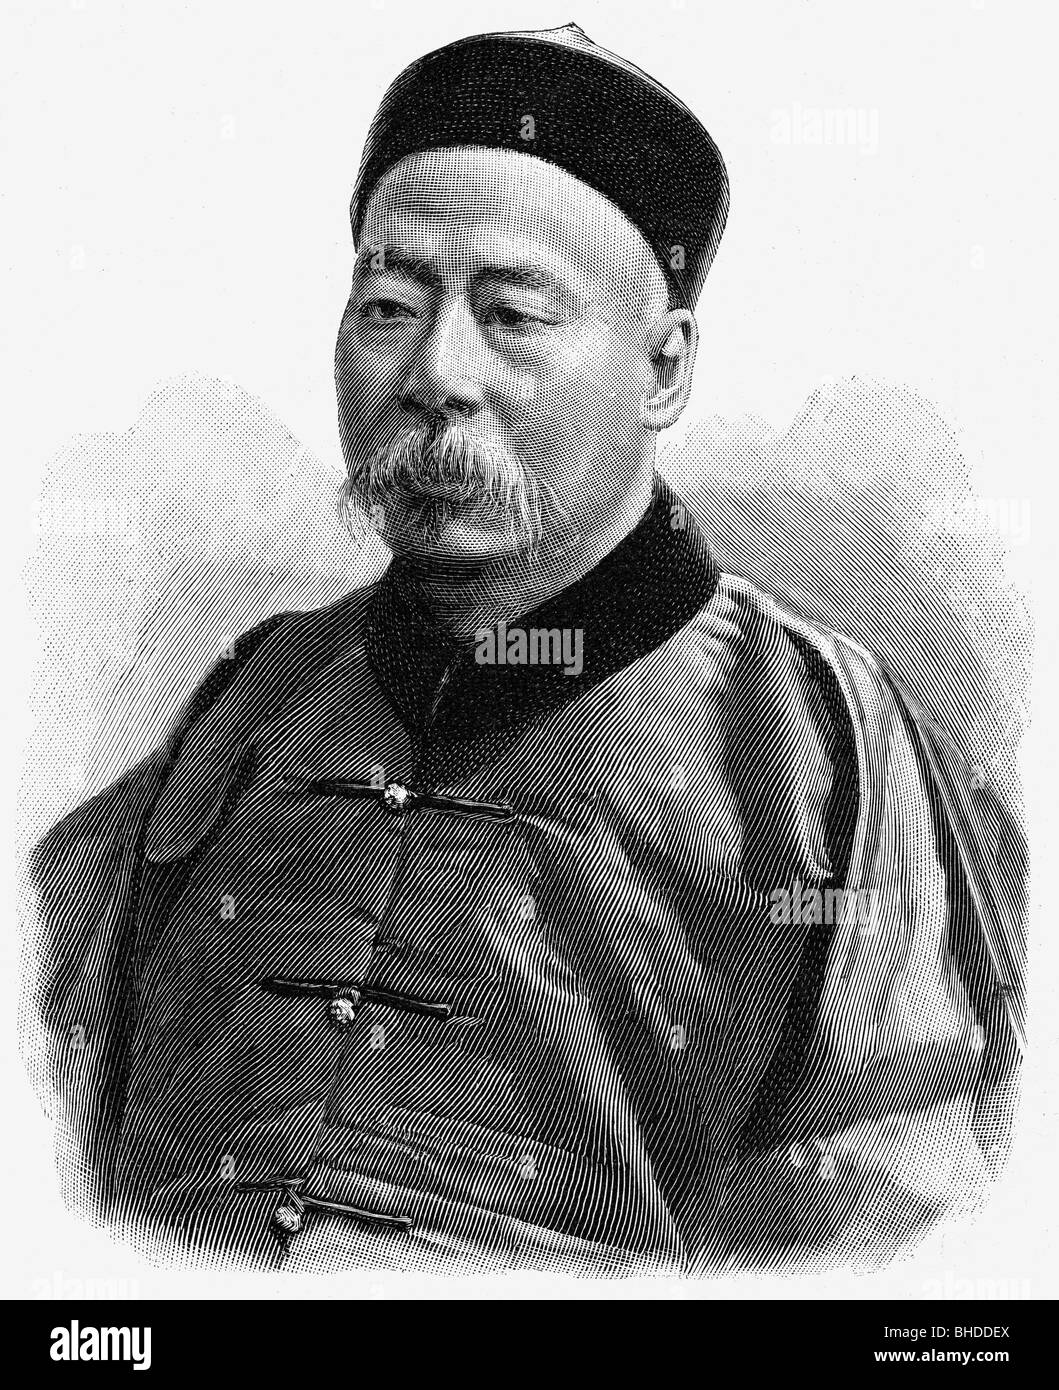 Huan, Lii Hai, second half of the 19th century, Chinese politician, envoy in Berlin, portrait, wood engraving, , - Stock Image